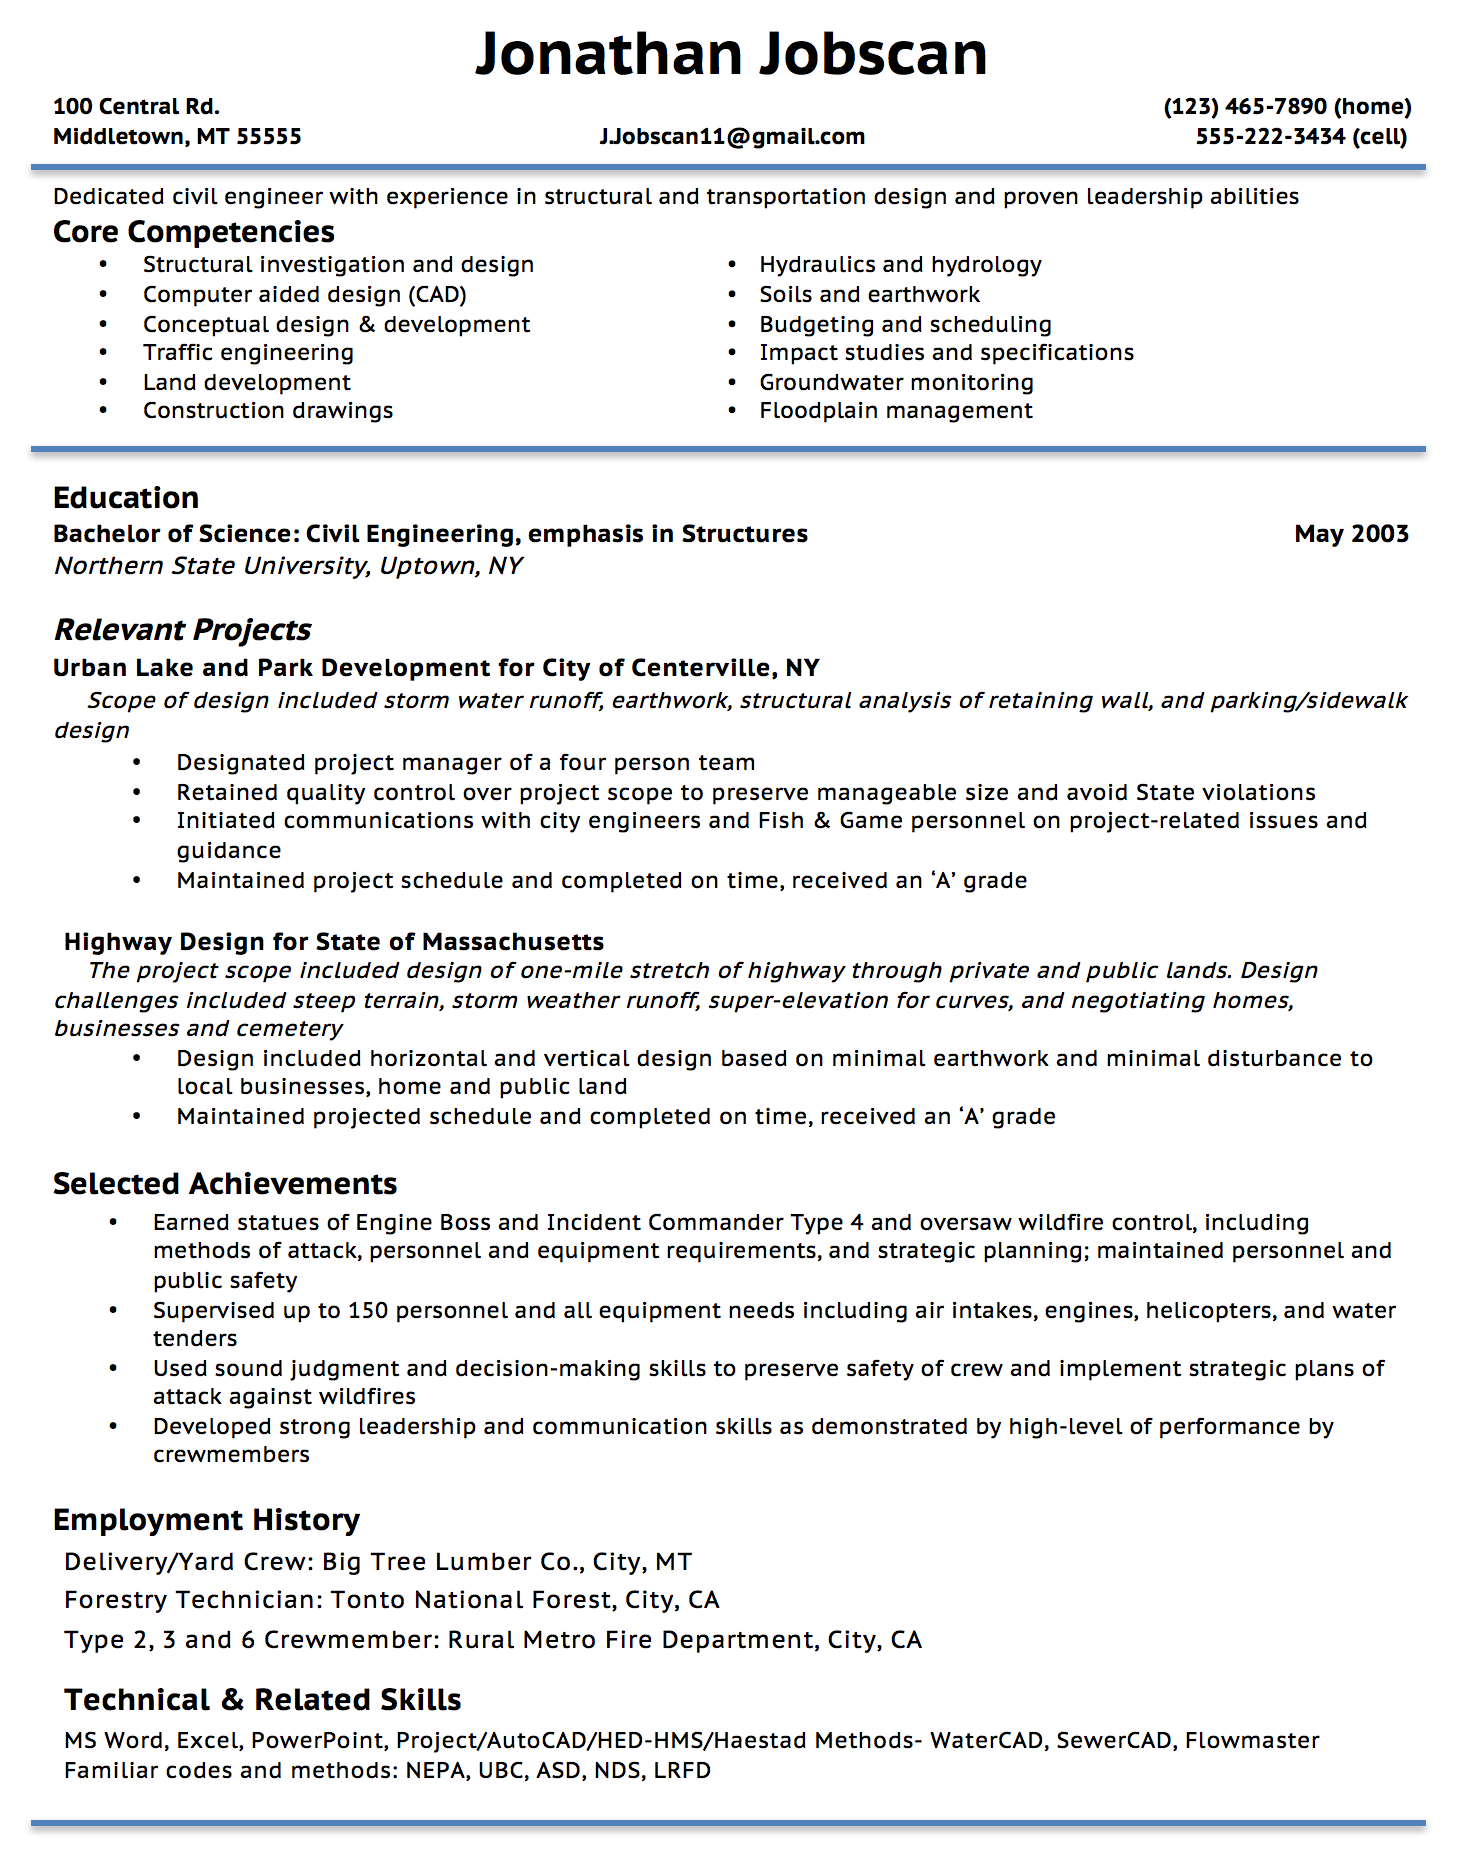 Opposenewapstandardsus  Winning Resume Writing Guide  Jobscan With Fair Example Of A Functional Resume Format With Extraordinary Sushi Chef Resume Also Icu Resume In Addition Simple Resume Template Free And Action Resume Words As Well As Maintenance Resume Objective Additionally Resume Spelling Accent From Jobscanco With Opposenewapstandardsus  Fair Resume Writing Guide  Jobscan With Extraordinary Example Of A Functional Resume Format And Winning Sushi Chef Resume Also Icu Resume In Addition Simple Resume Template Free From Jobscanco